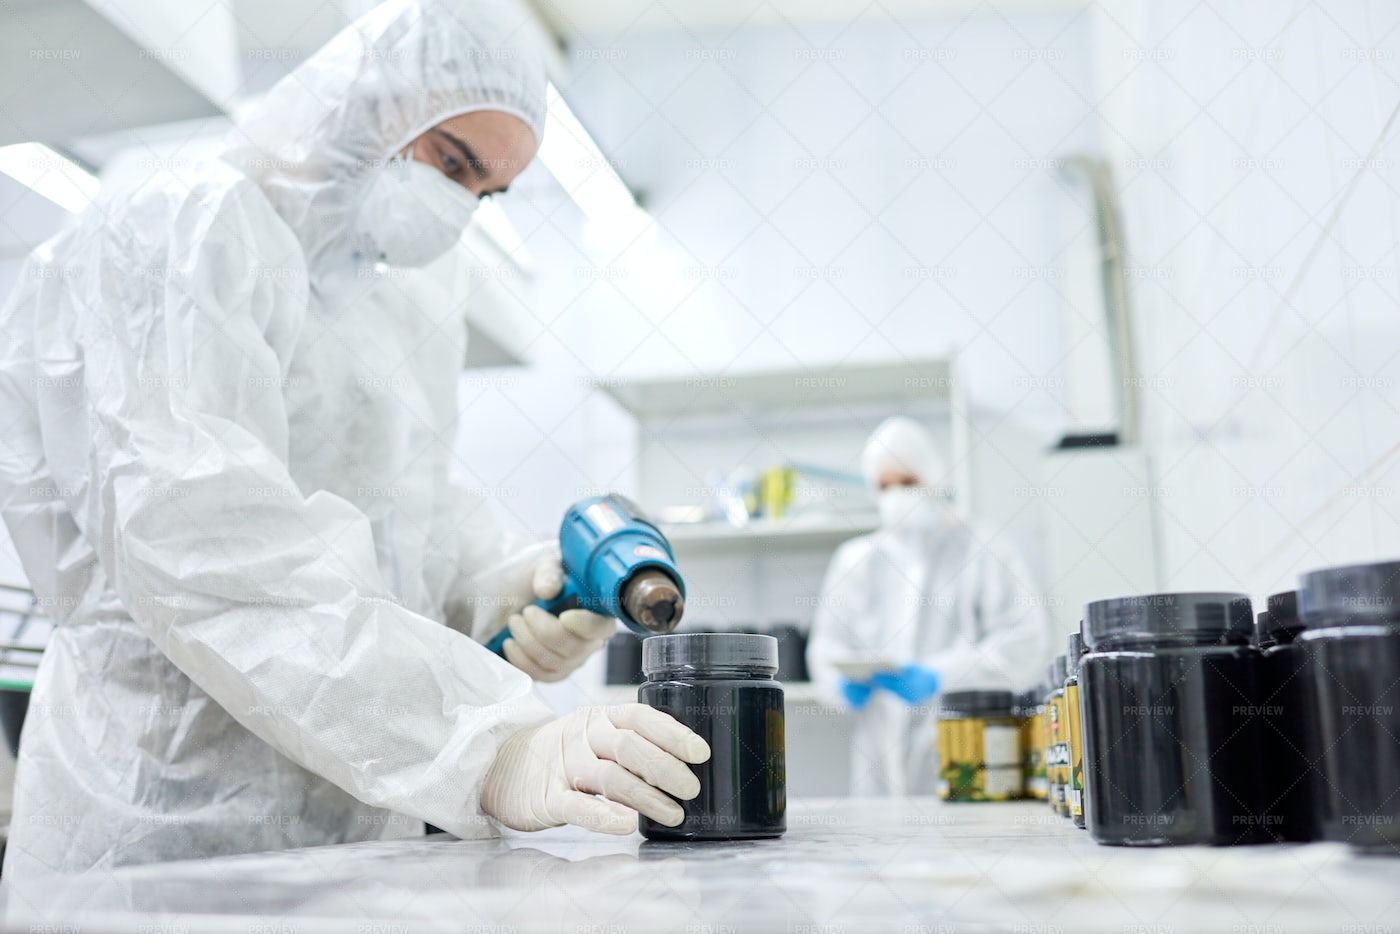 Working Process In Manufacturing...: Stock Photos